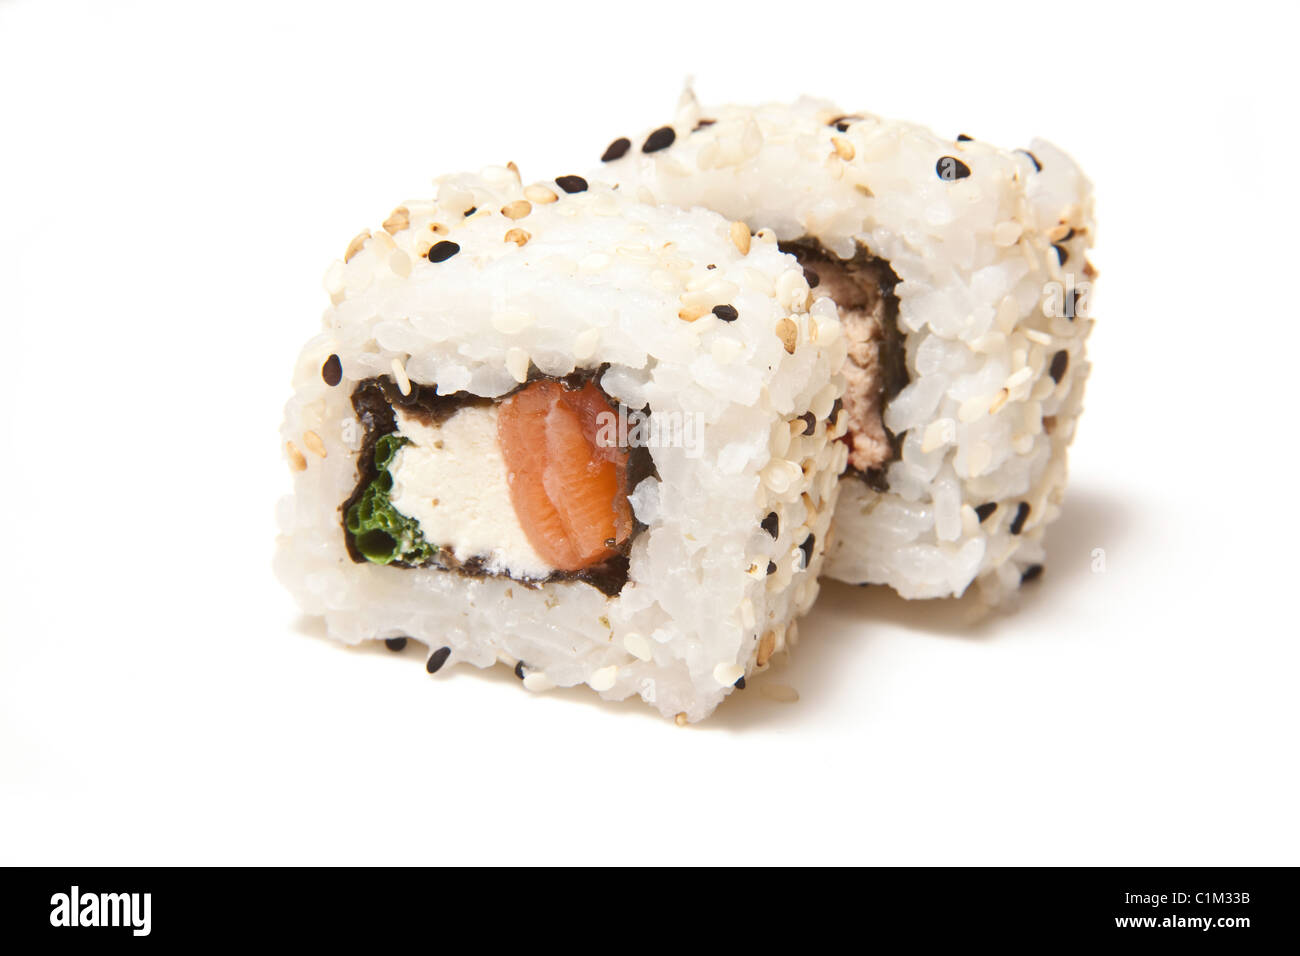 Salmon and cream cheese sushi roll isolated on a white studio background. - Stock Image